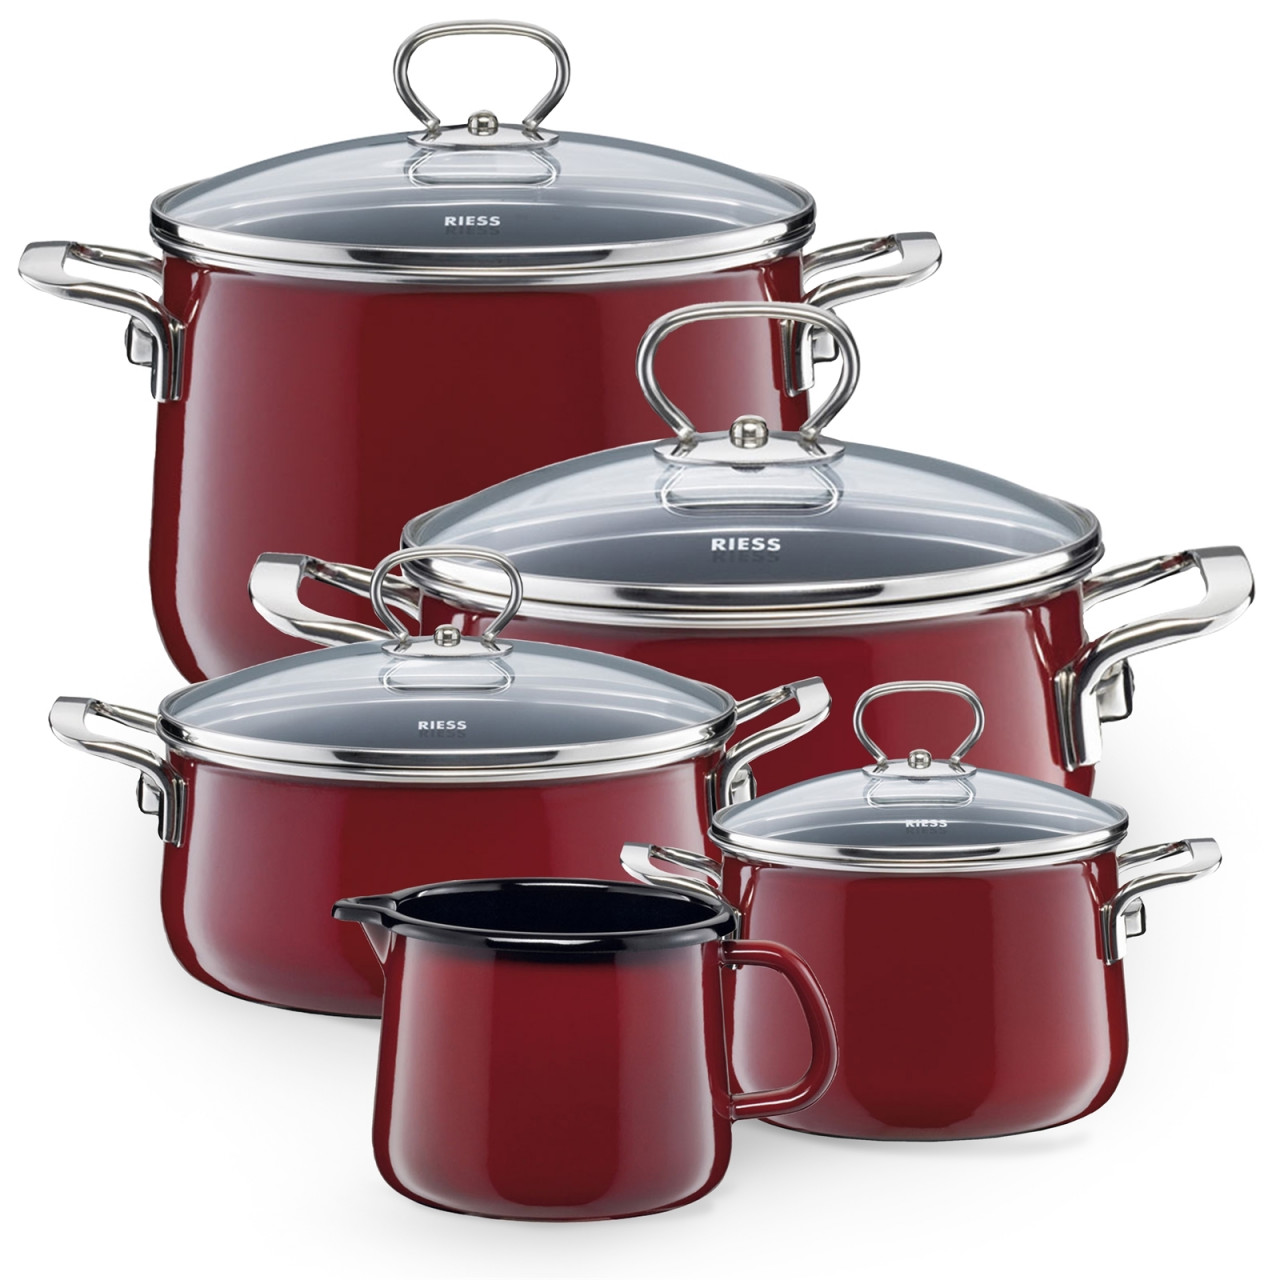 Riess Topfset Familienset 5-teilig ROSSO